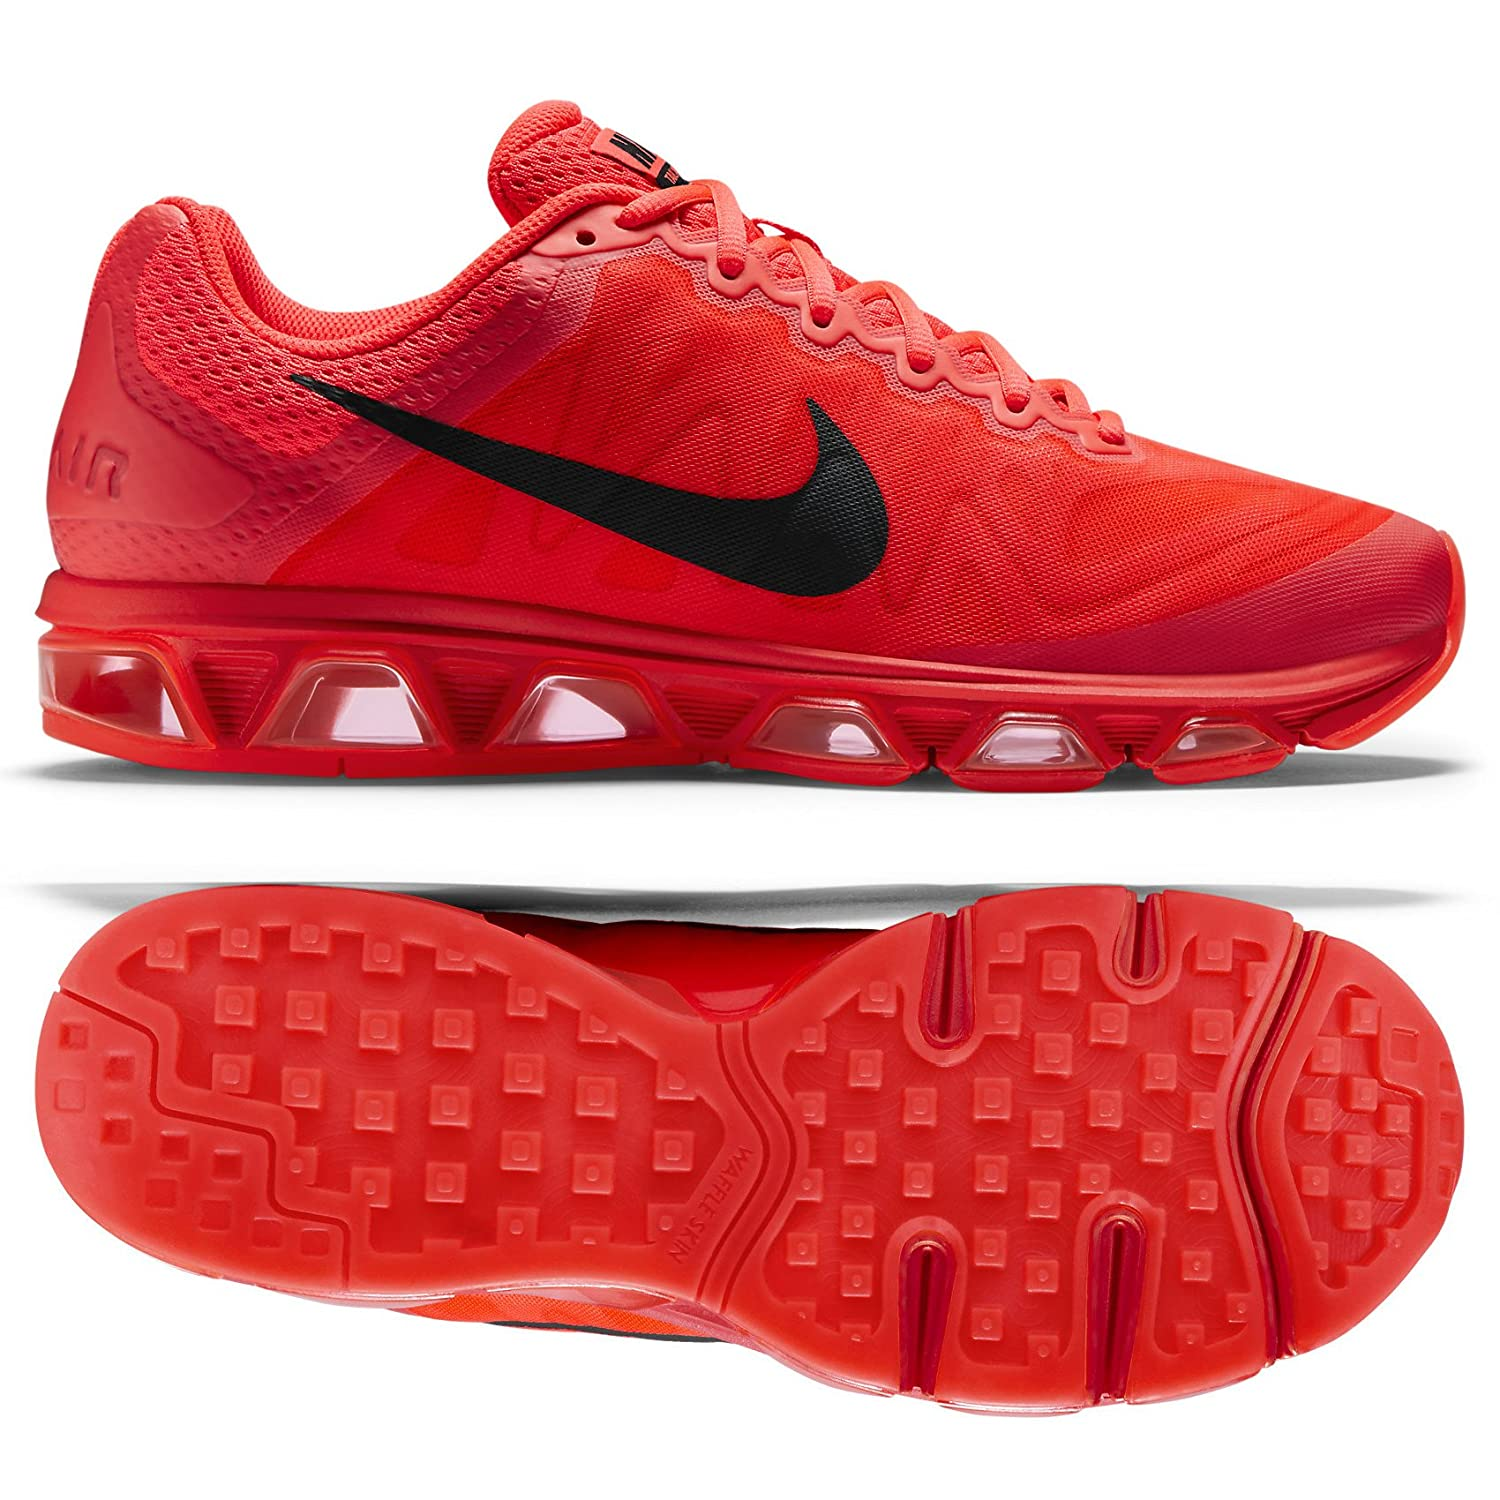 4166c0f48e45 mens nike air max tailwind 7 running shoes cheap   OFF77% The Largest  Catalog Discounts